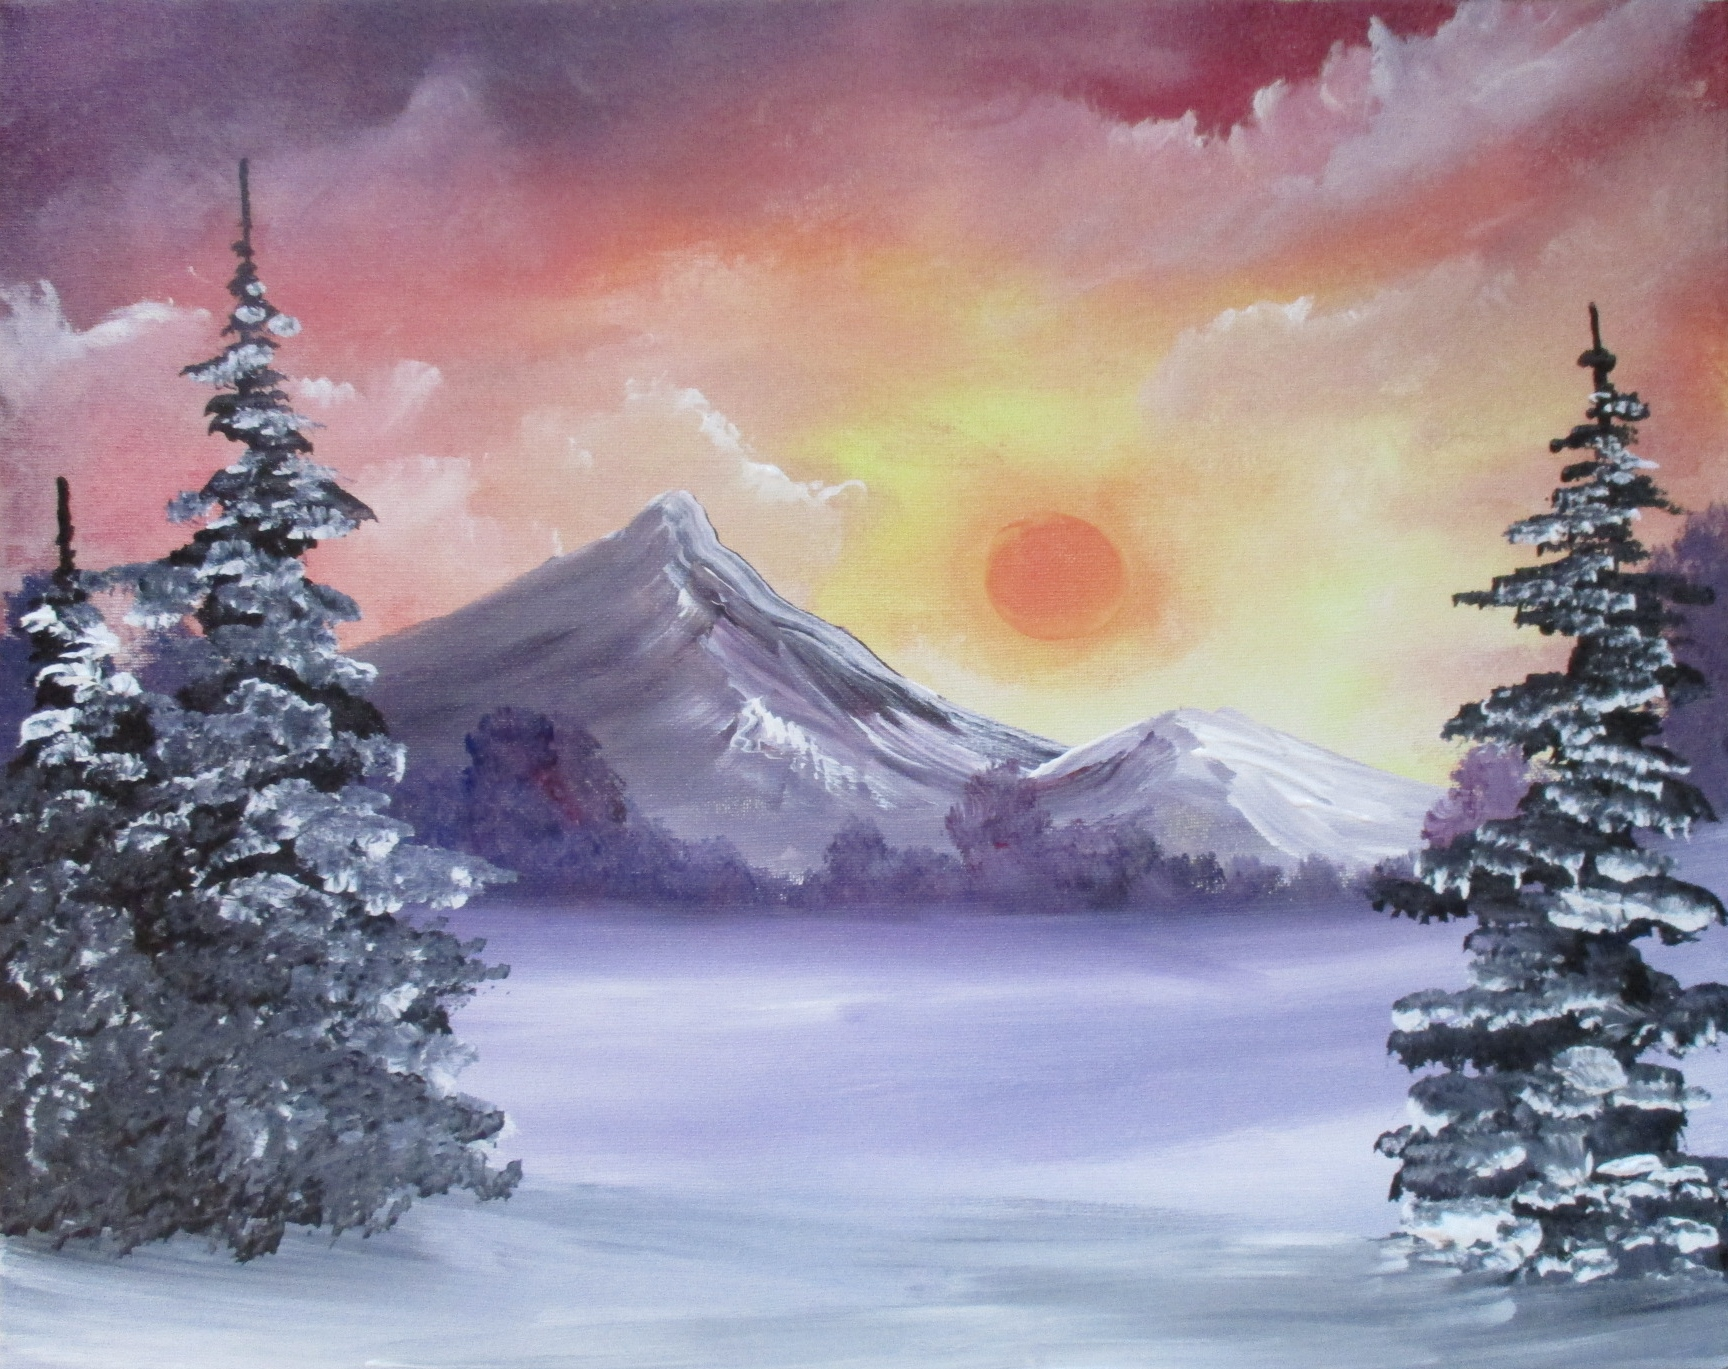 Acrylic Landscape Painting Lesson | Winter mountains and sunset